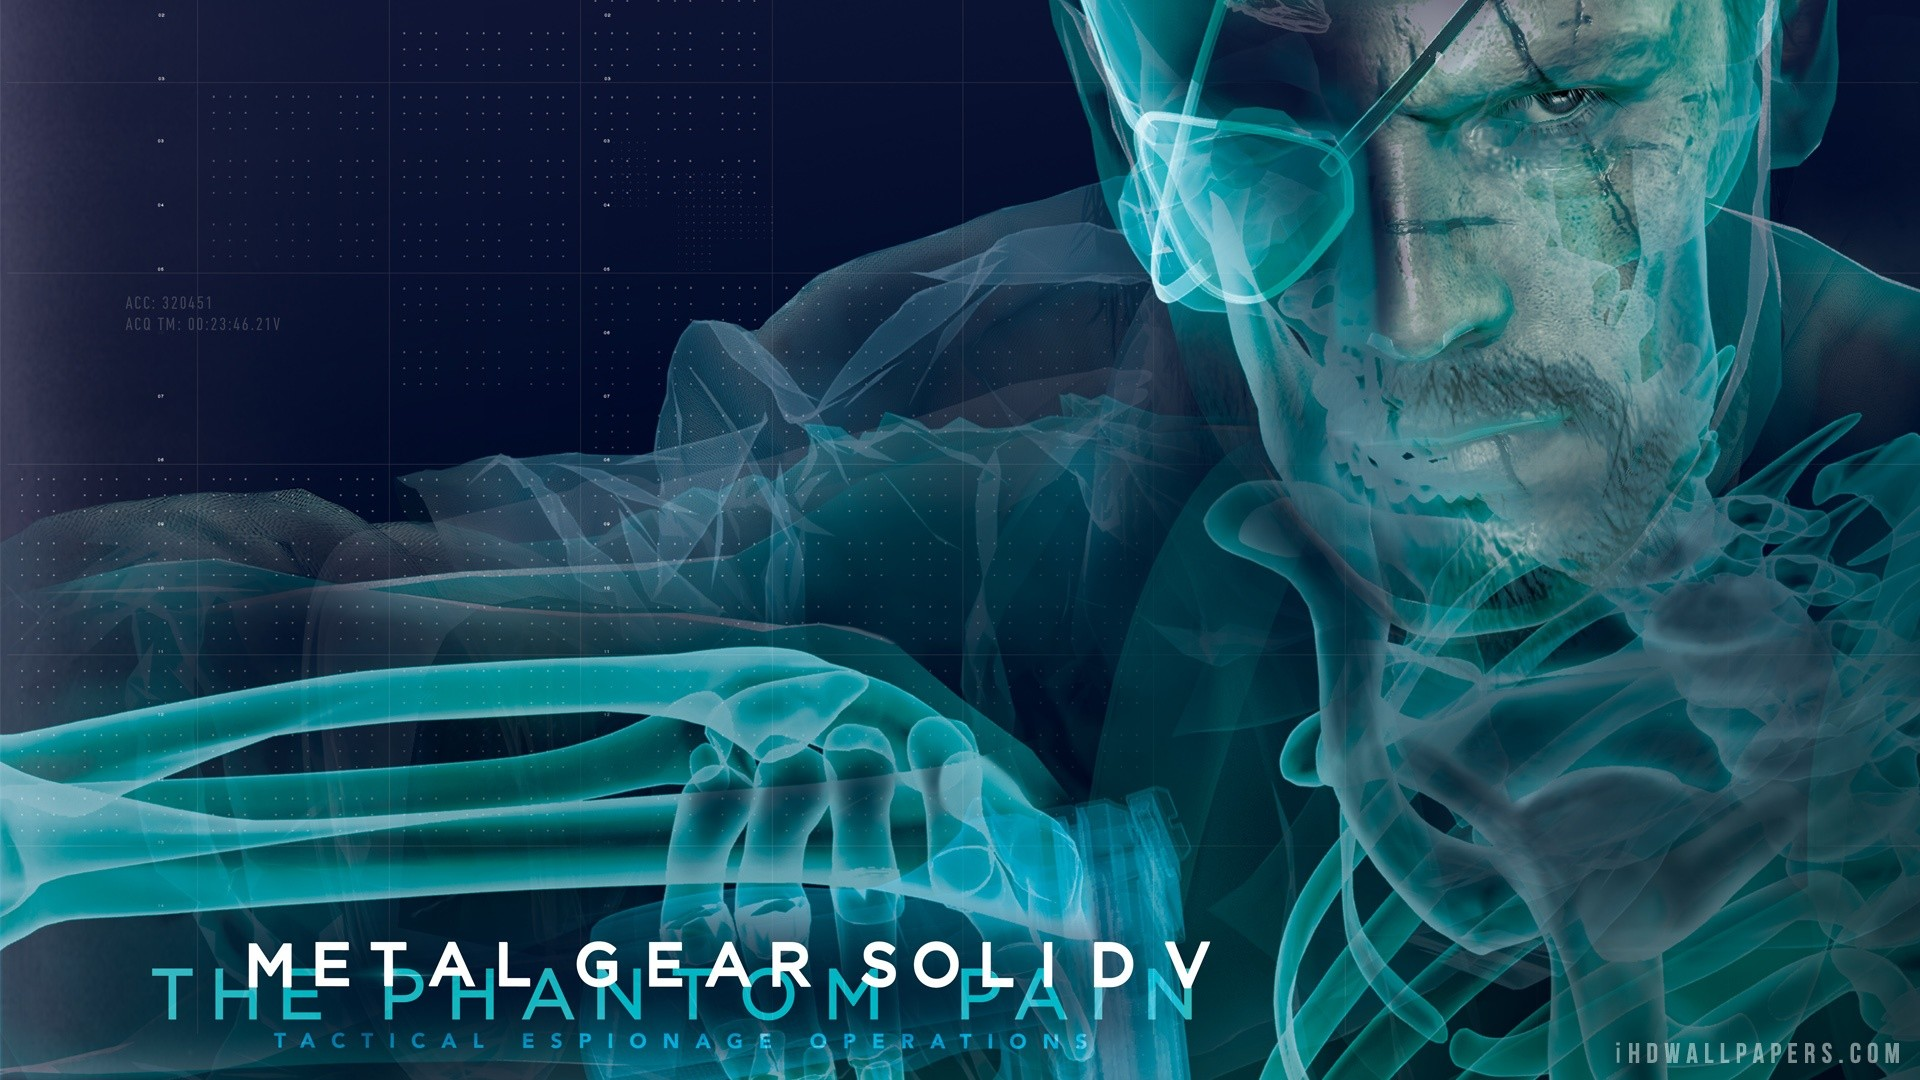 1920x1080 Metal Gear Solid 5 The Phantom Pain HD Wallpaper - iHD Wallpapers